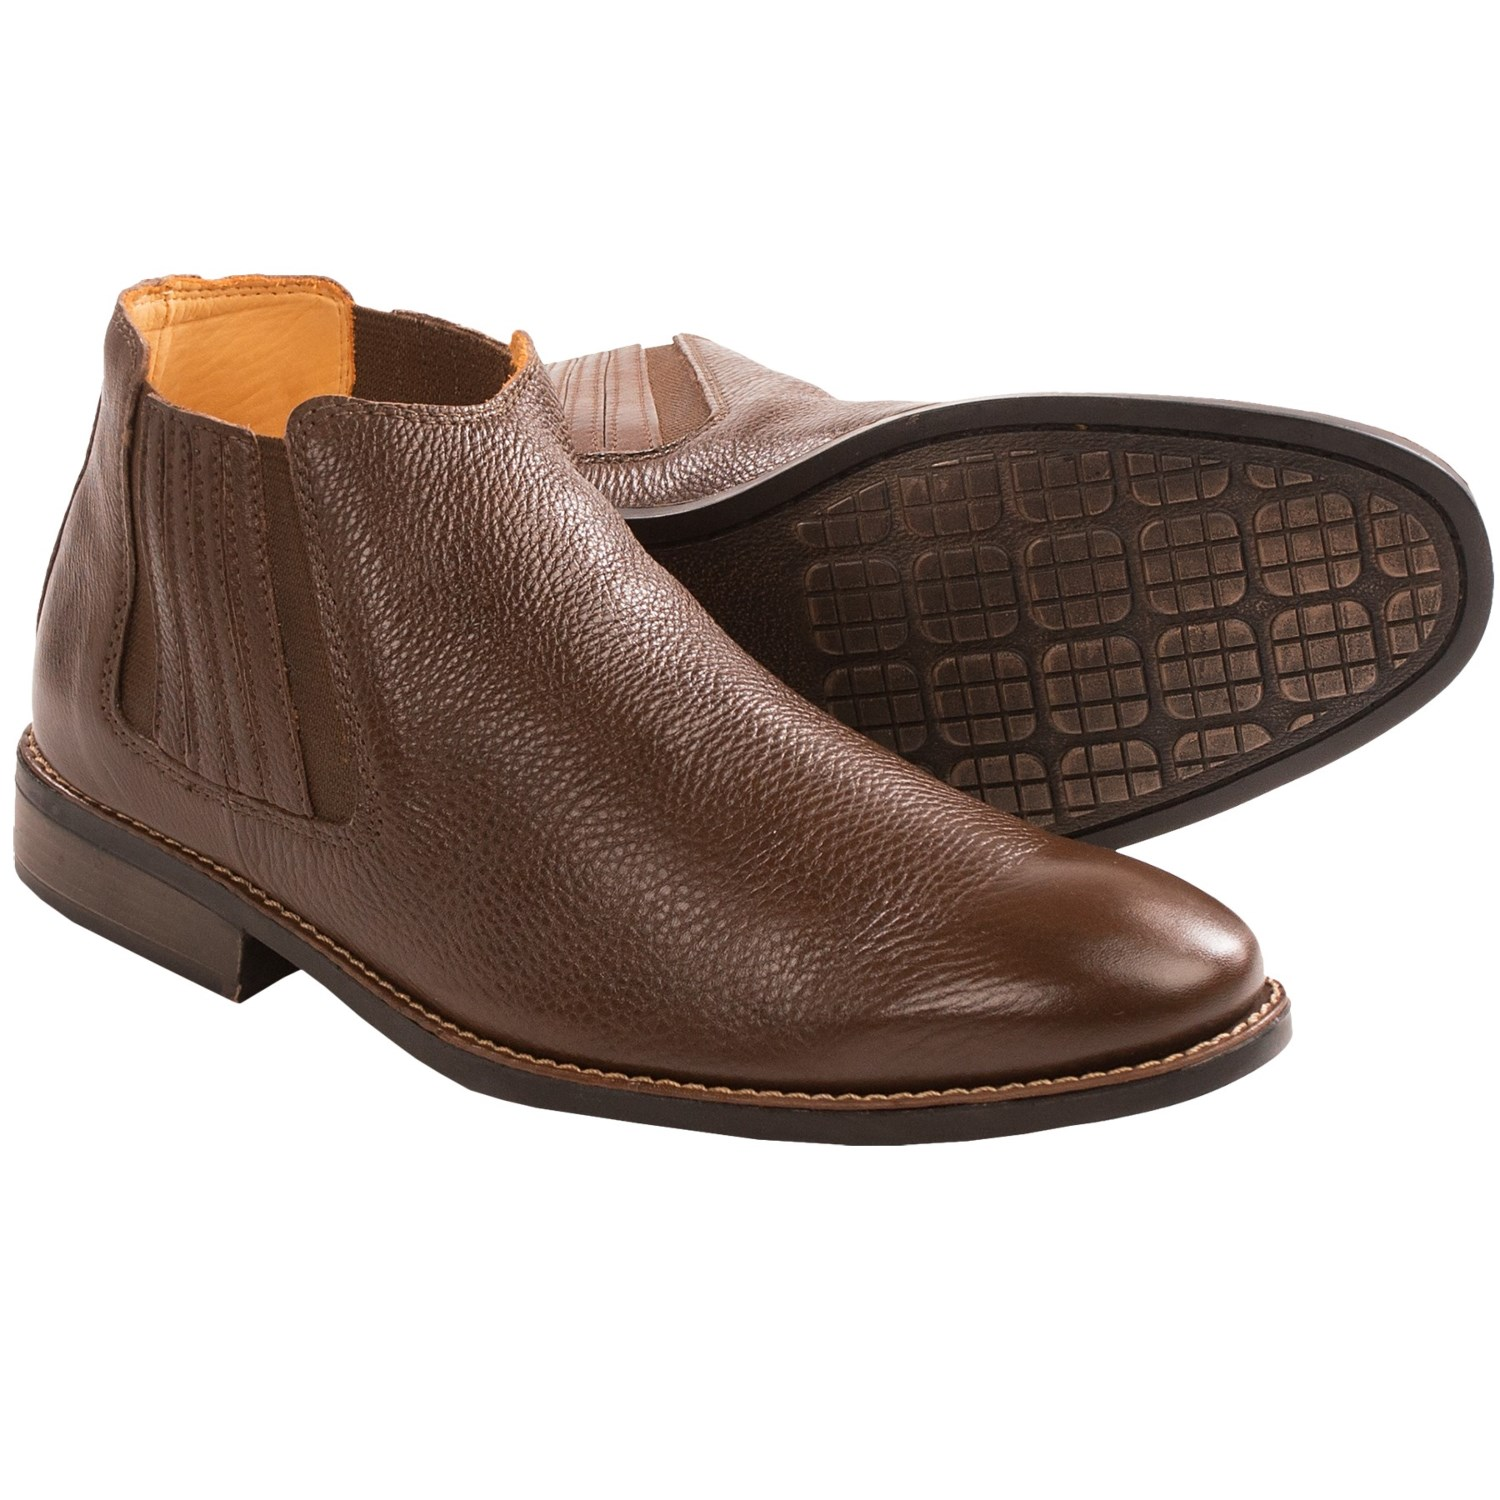 Ankle Boots For Men MxQ3sZqH